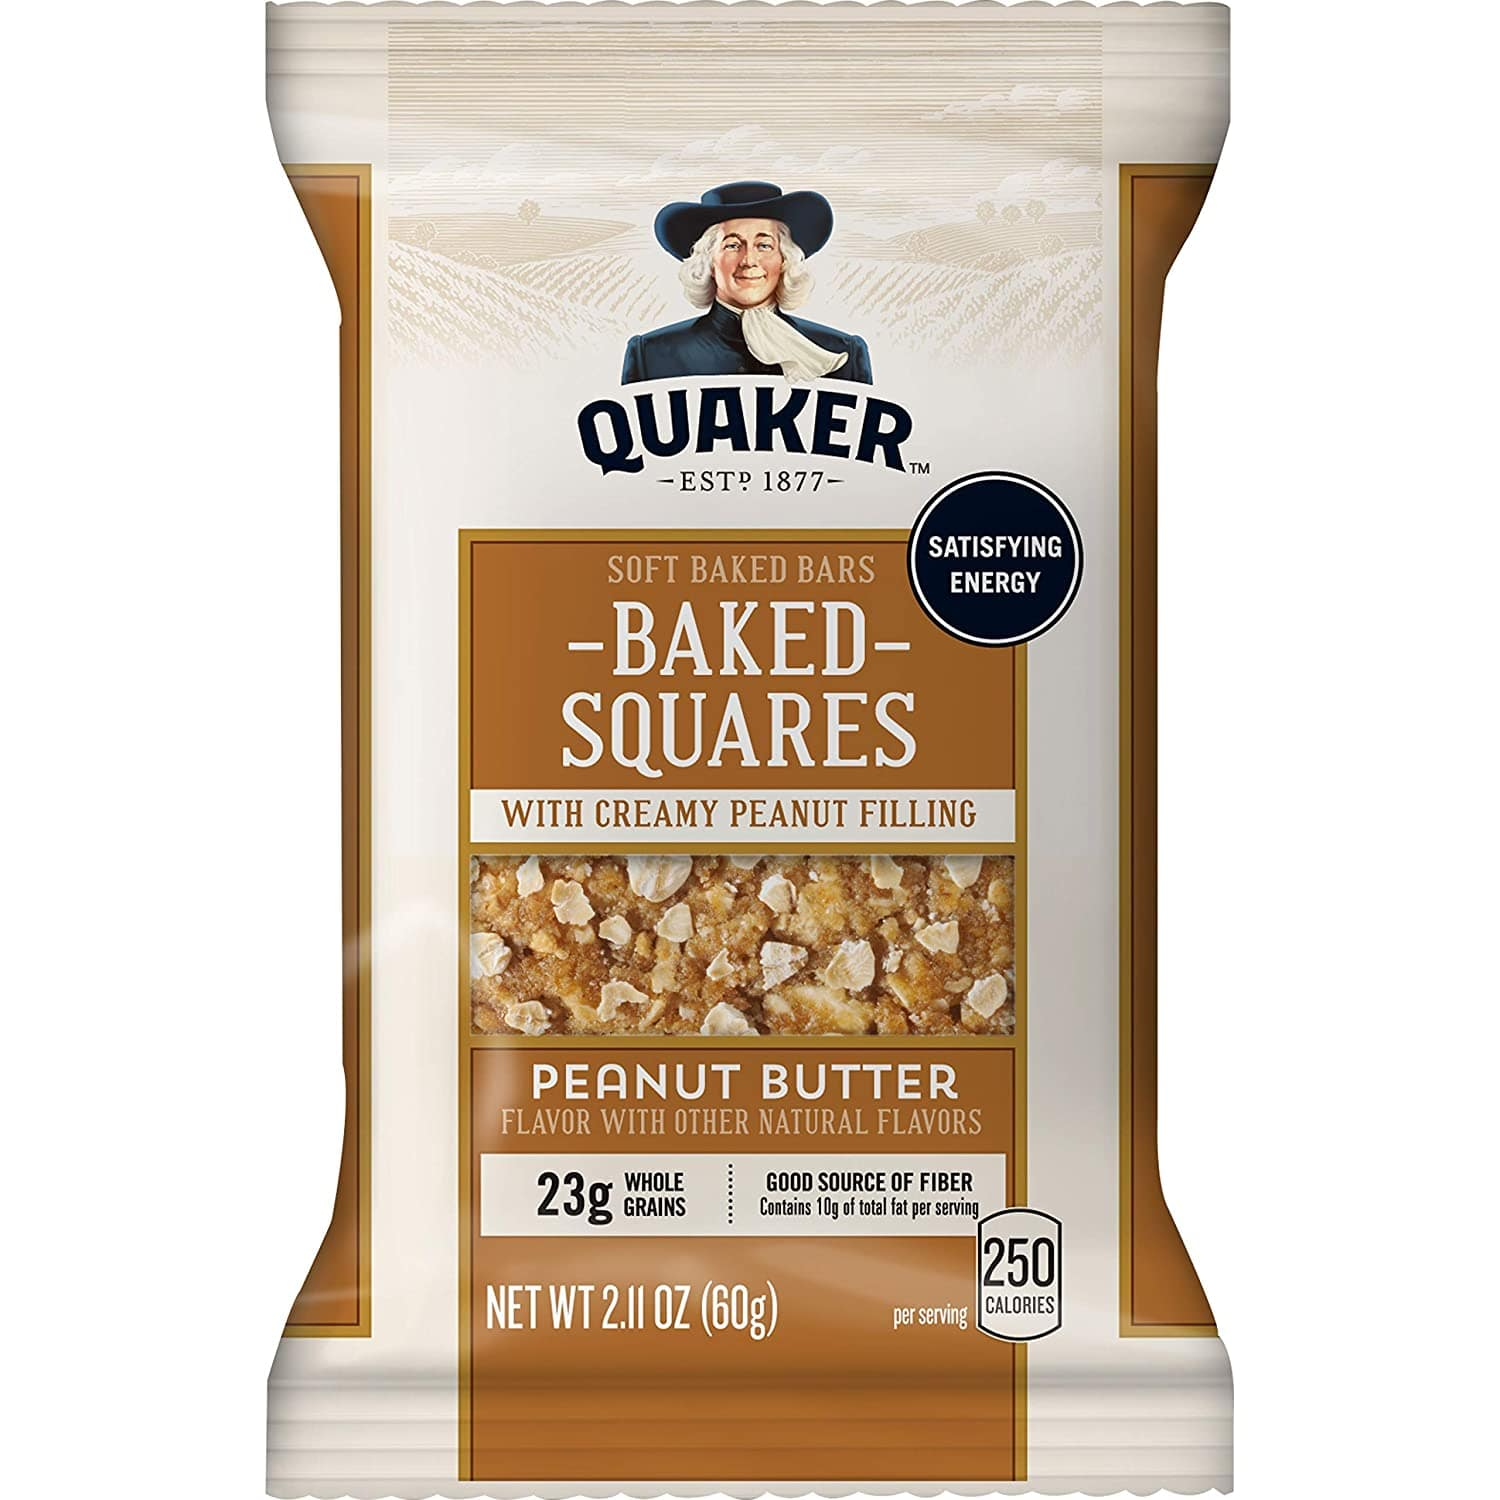 Quaker Baked Squares, Soft Baked Bars, Peanut Butter & Blueberry, 5 Bars (Pack of 4) as low as $8.82